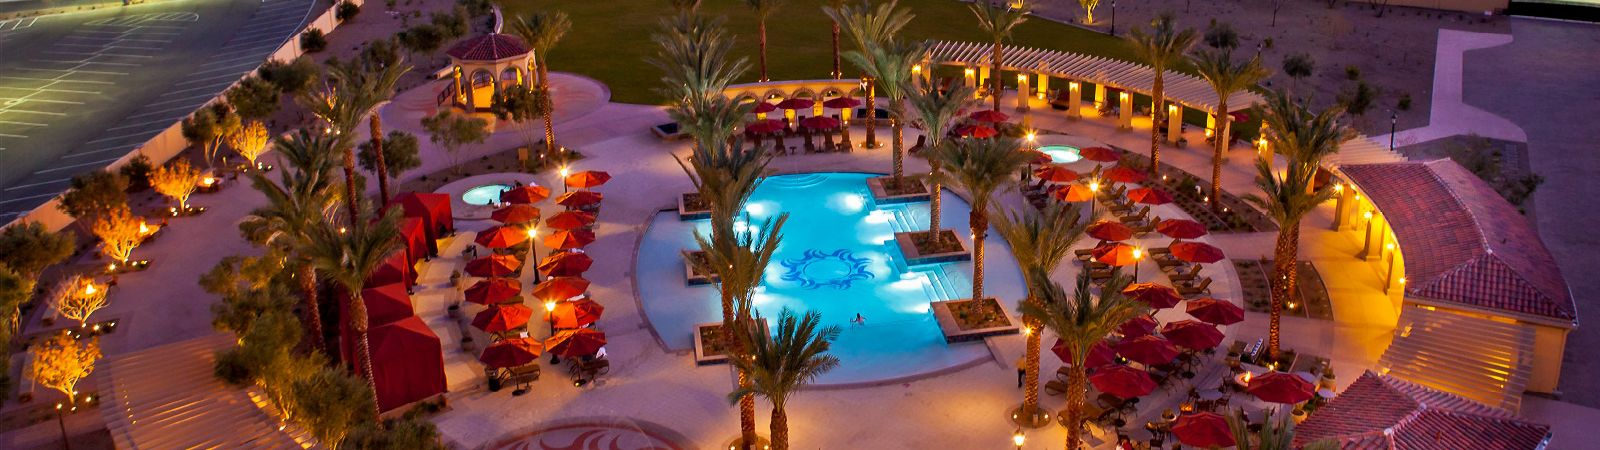 Casino Del Sol Resort Pool